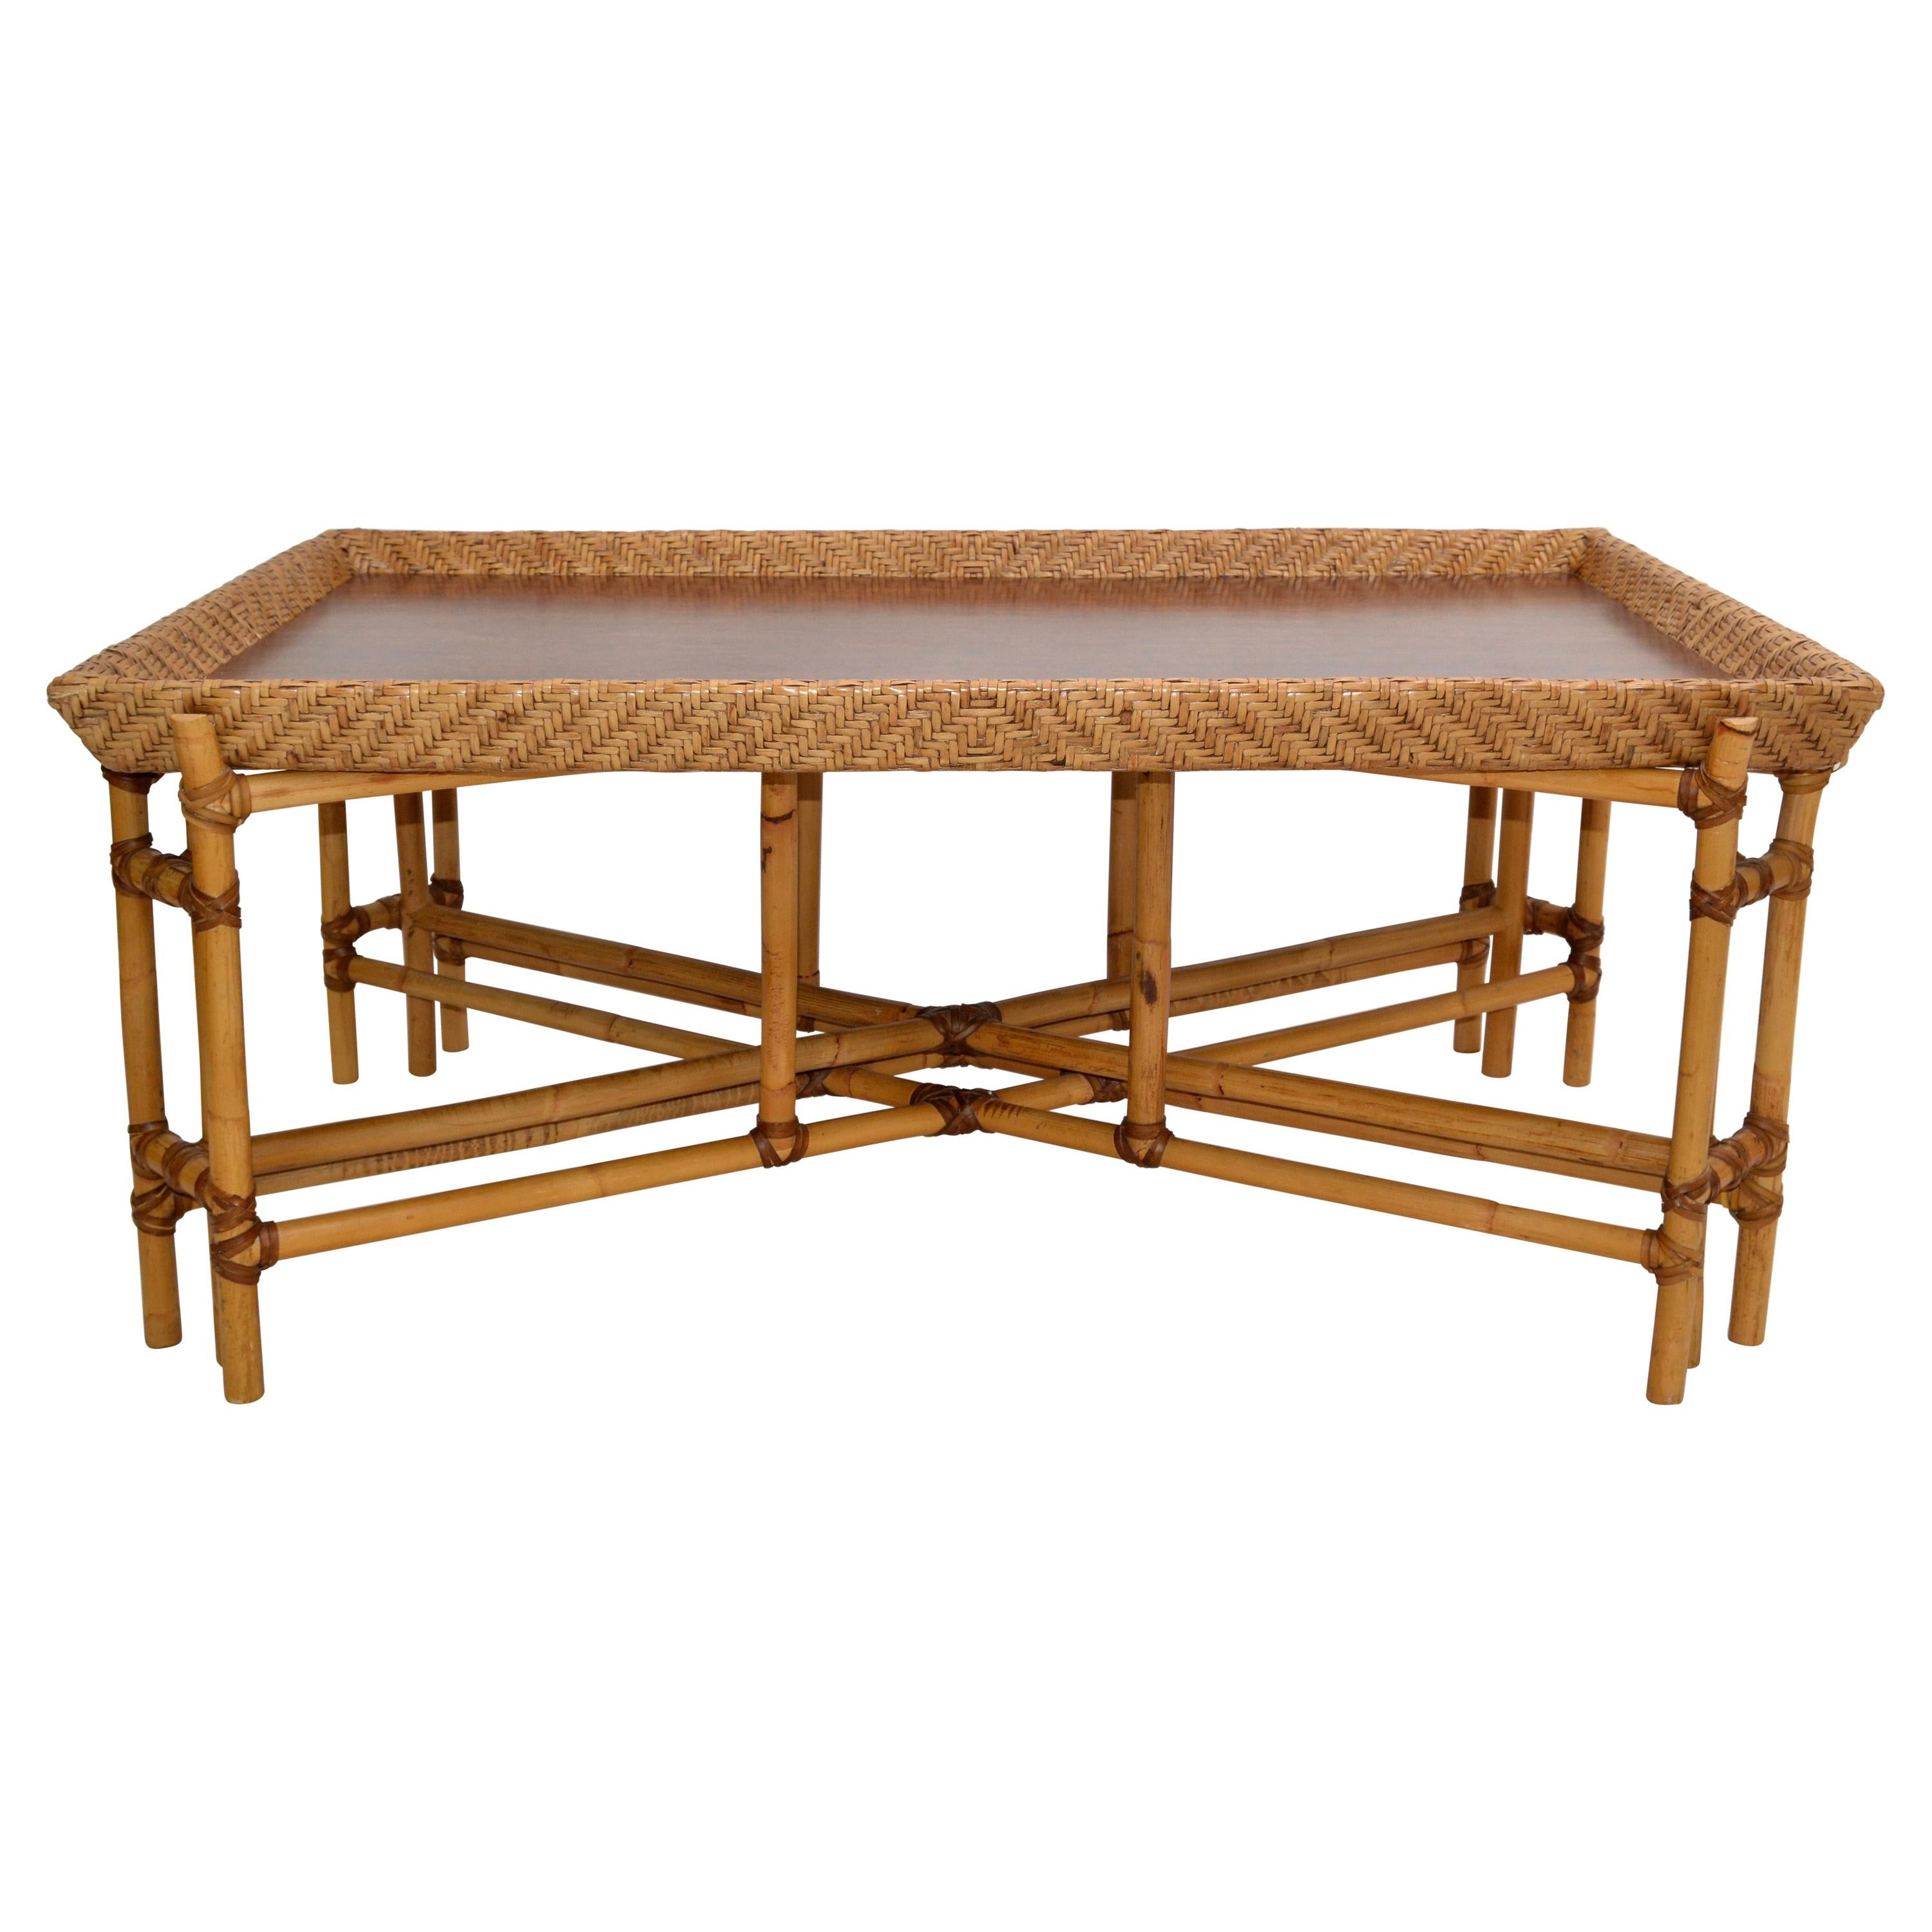 McGuire Style Rectangular Bamboo Wood Mid-Century Modern Tray Table American 80s